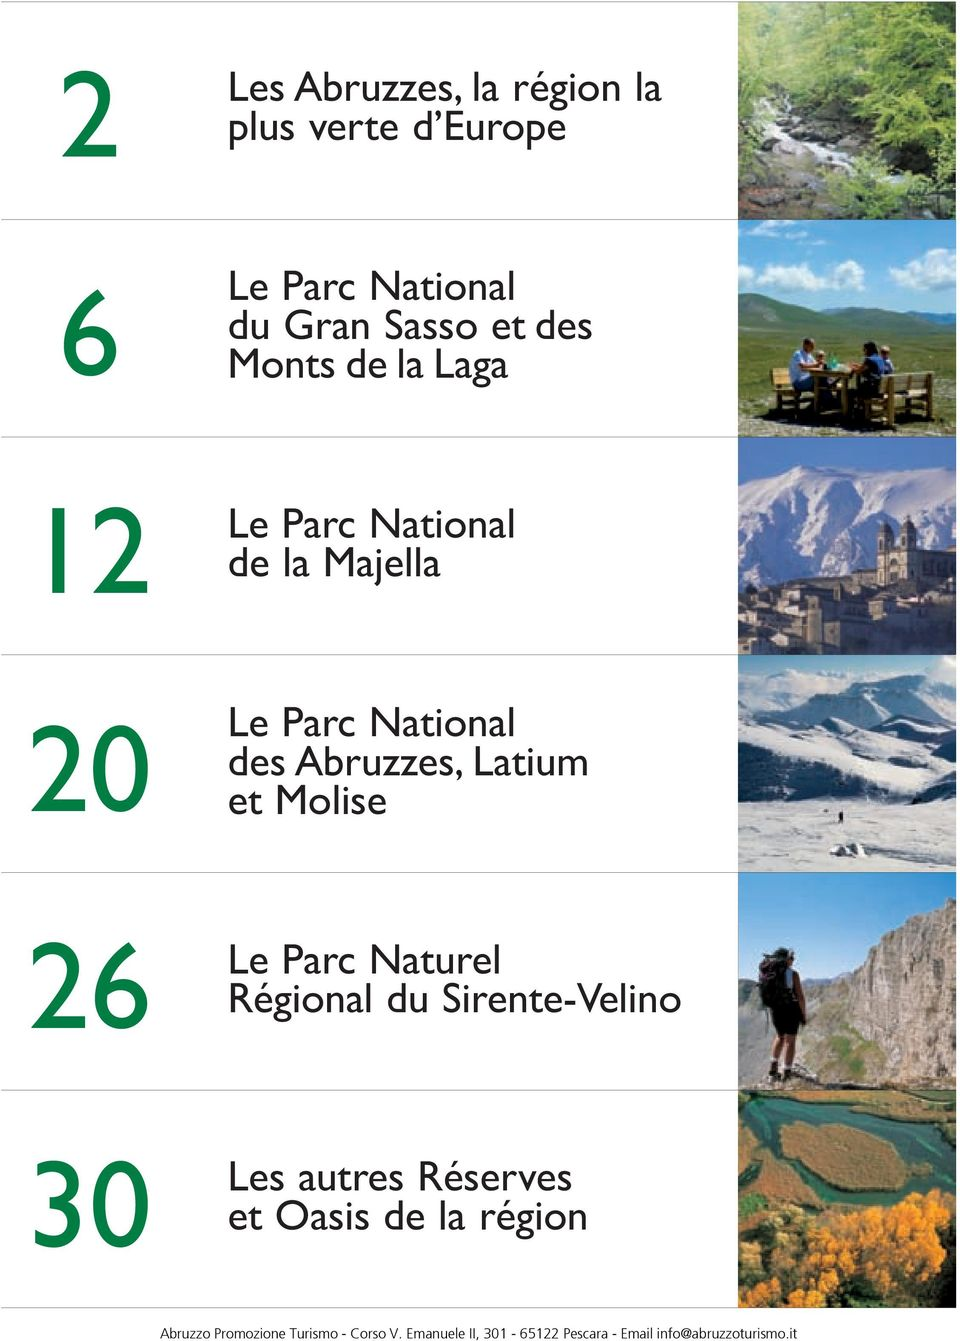 20 Le ParcNational des Abruzzes, Latium et Molise 26 Le ParcNaturel